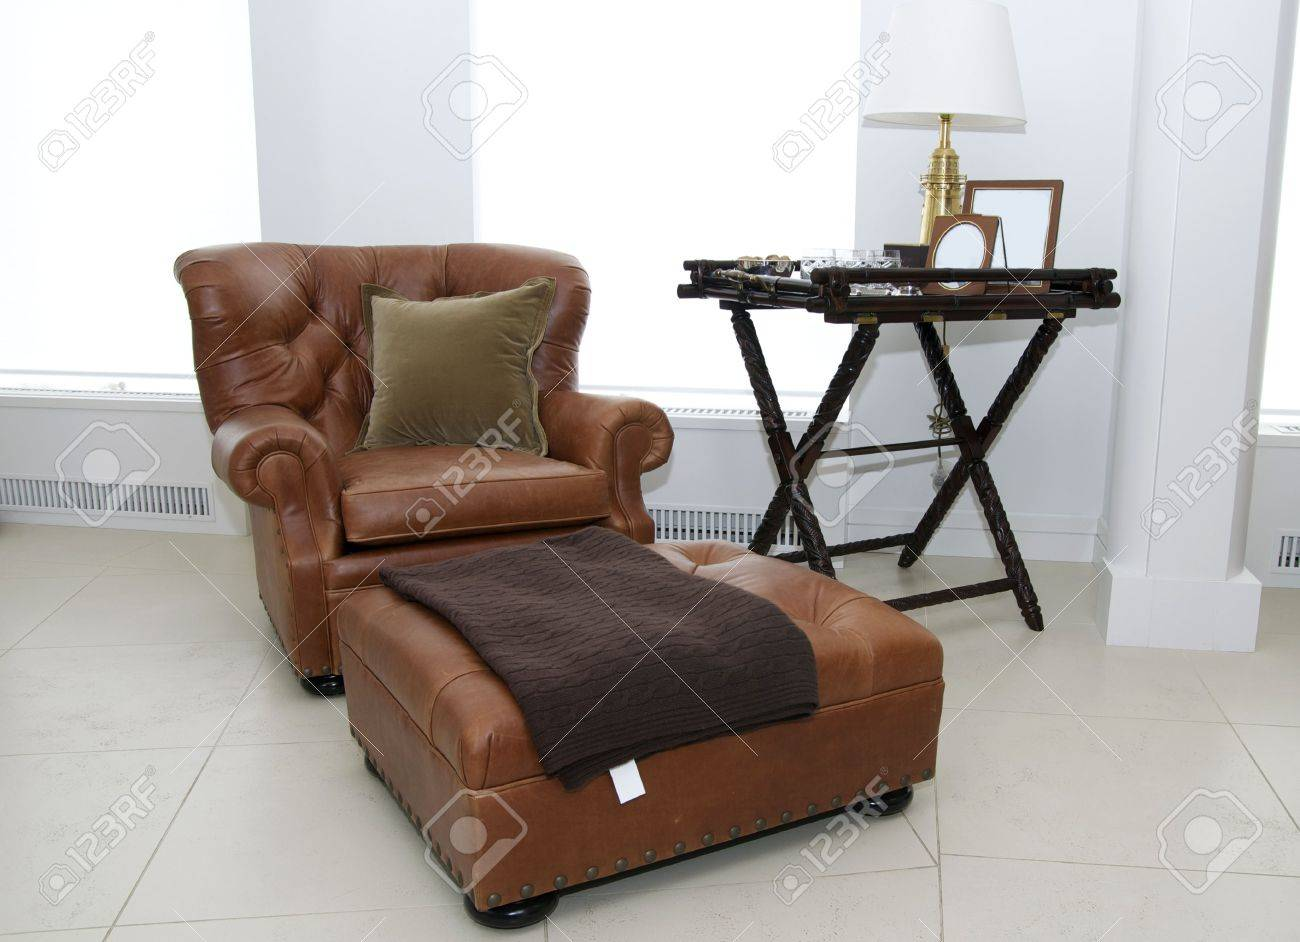 a large lounge chair Stock Photo - 13234242